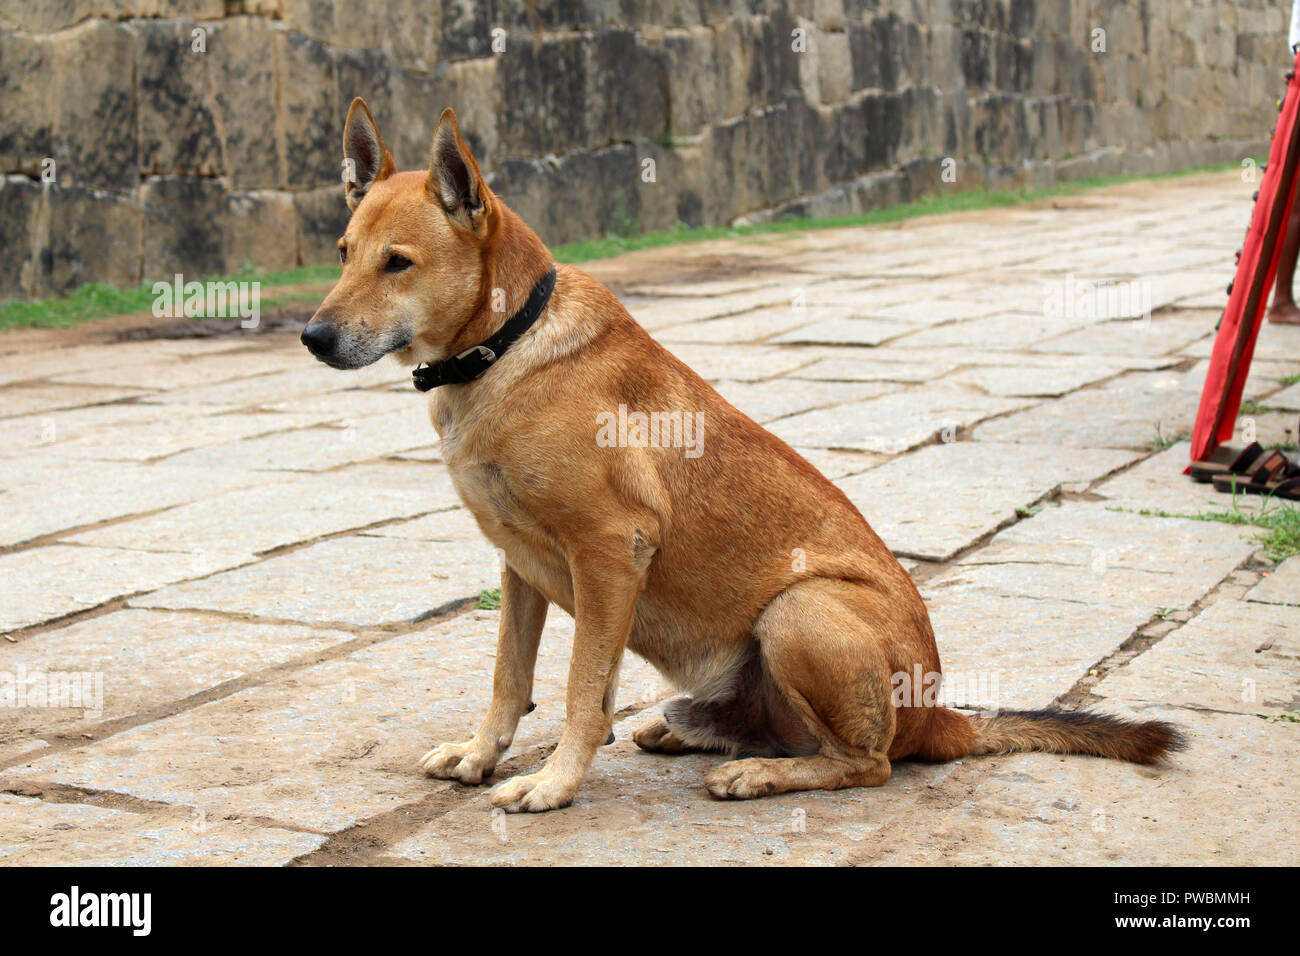 A dog is relaxing around the sellers in Hampi. Taken in India - August 2018. Stock Photo